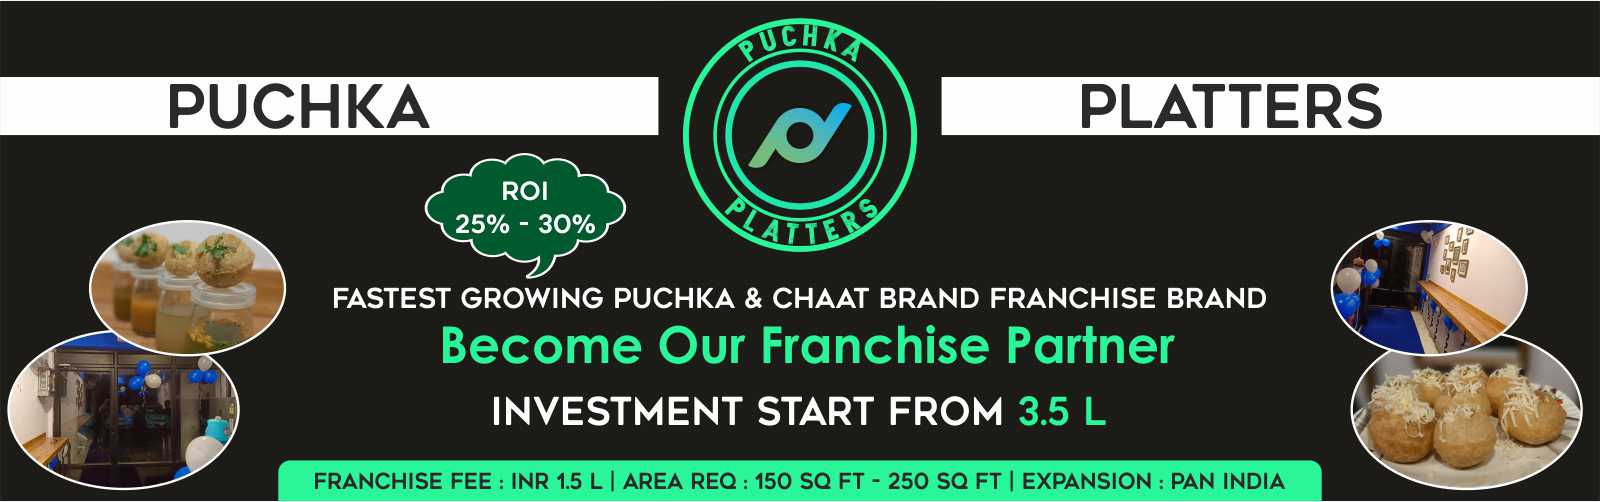 admin/photos/Puchka Platters ( Growing Puchka & Chaat Brand Franchise Brand )